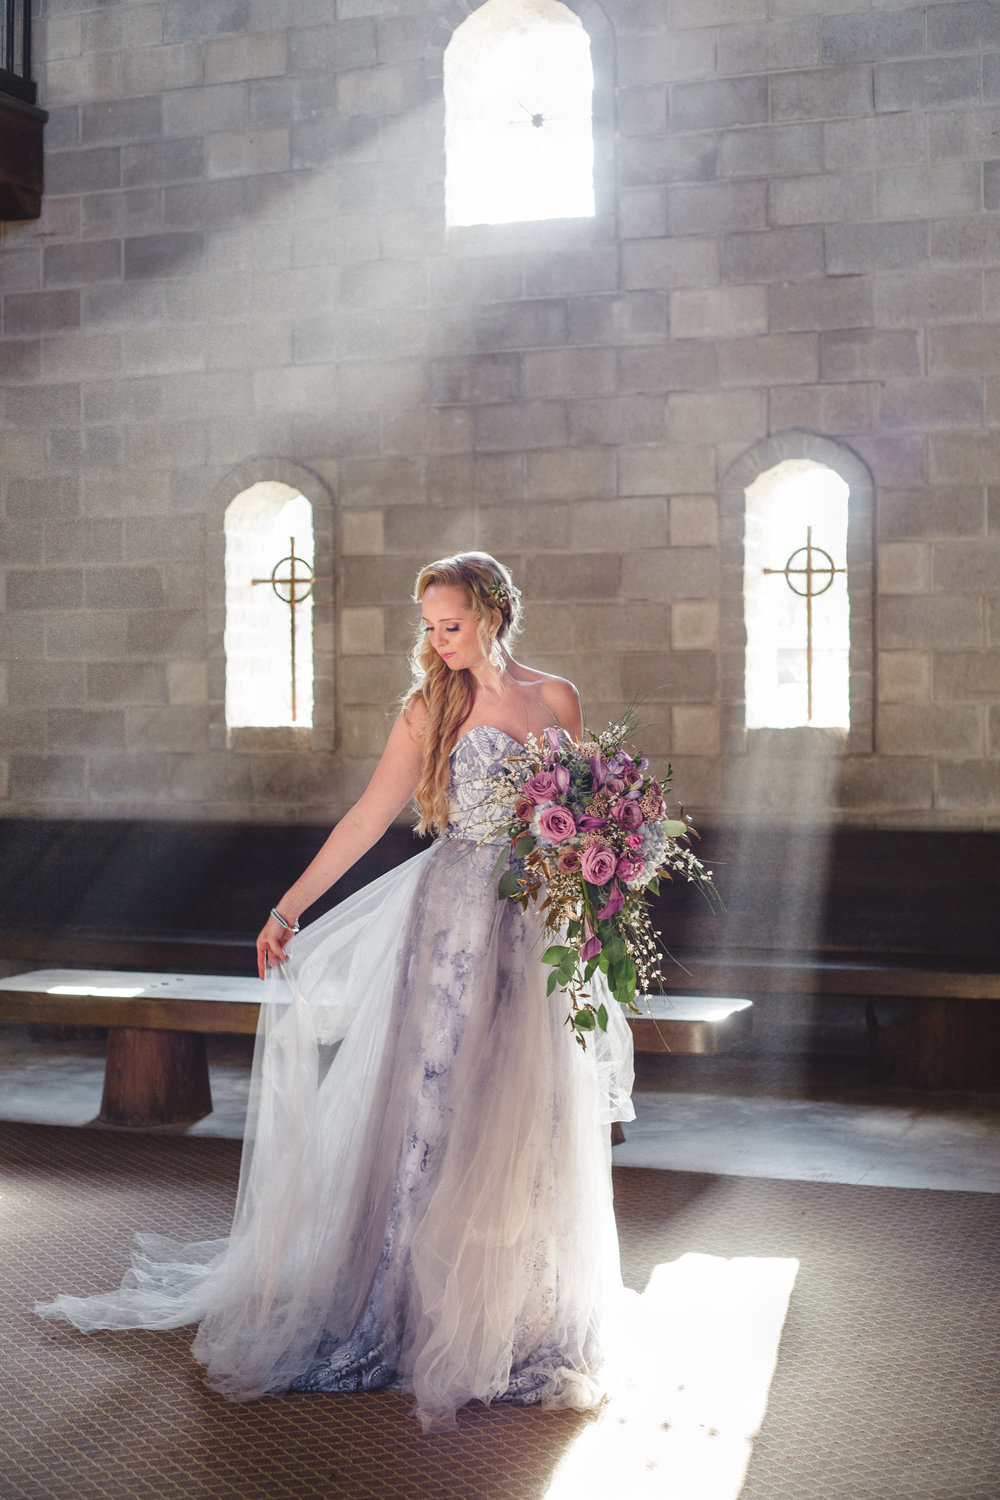 gorgeous bridal gown and bouquet for dreamy castle wedding